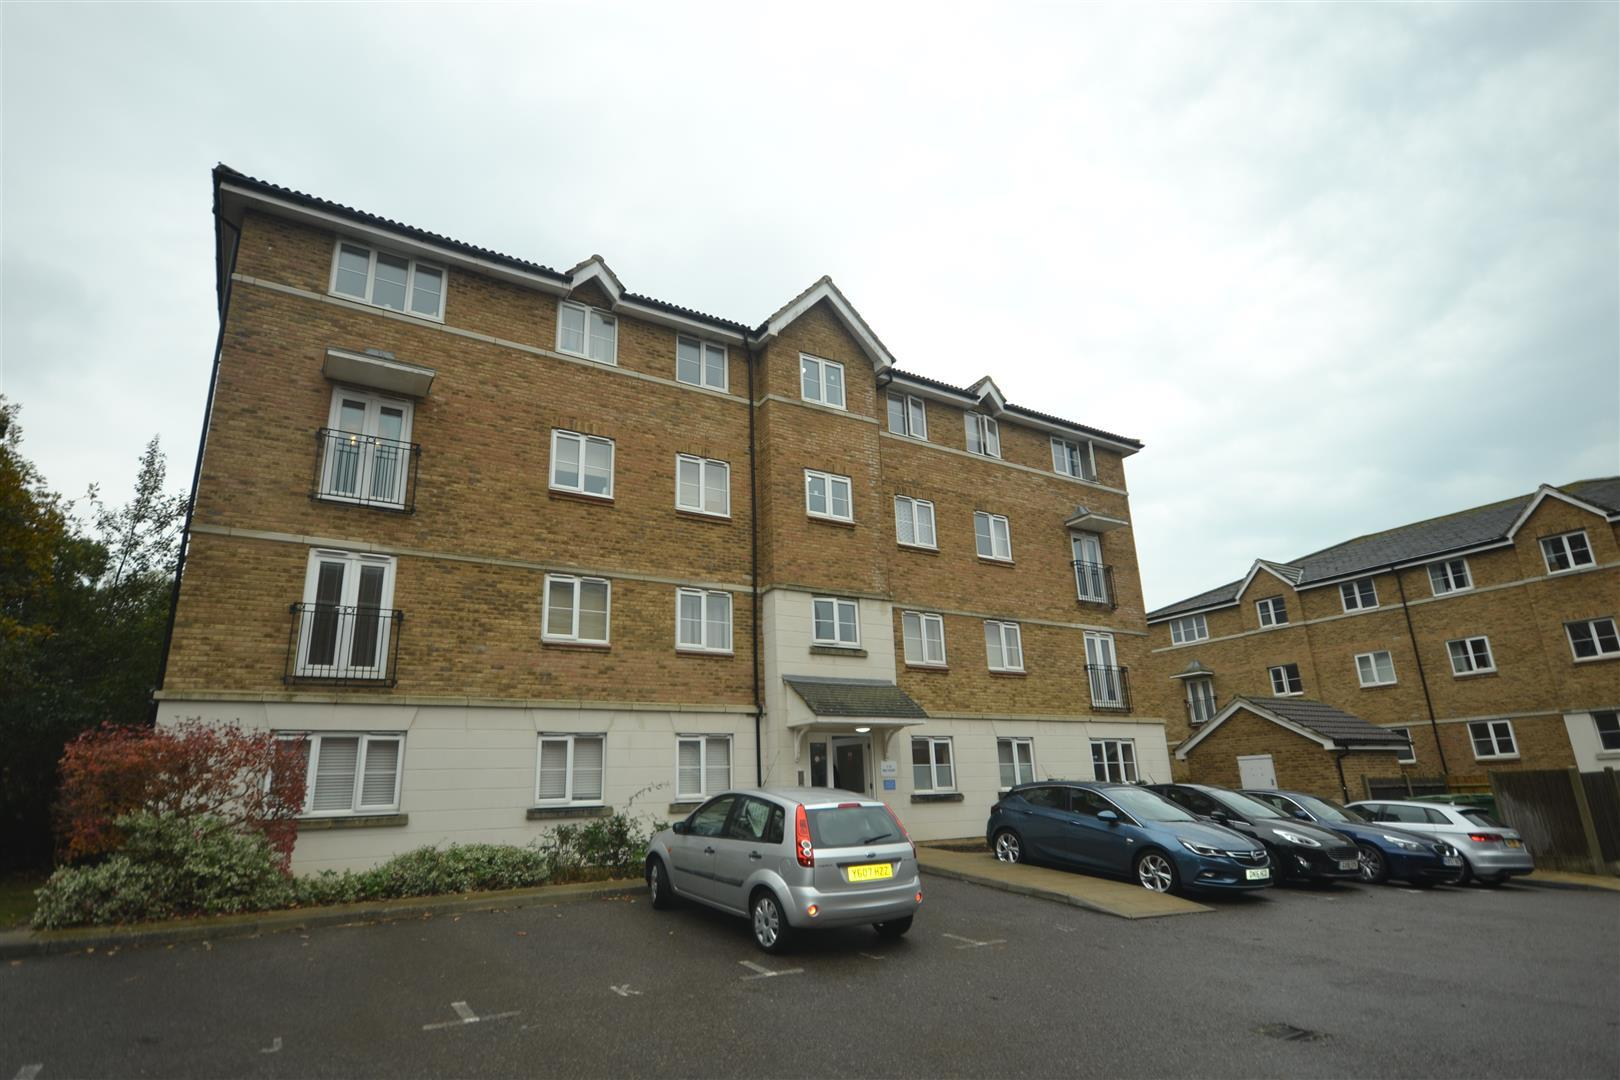 2 bed apartment for sale in Snowdrop Rise, St. Leonards-On-Sea, TN38